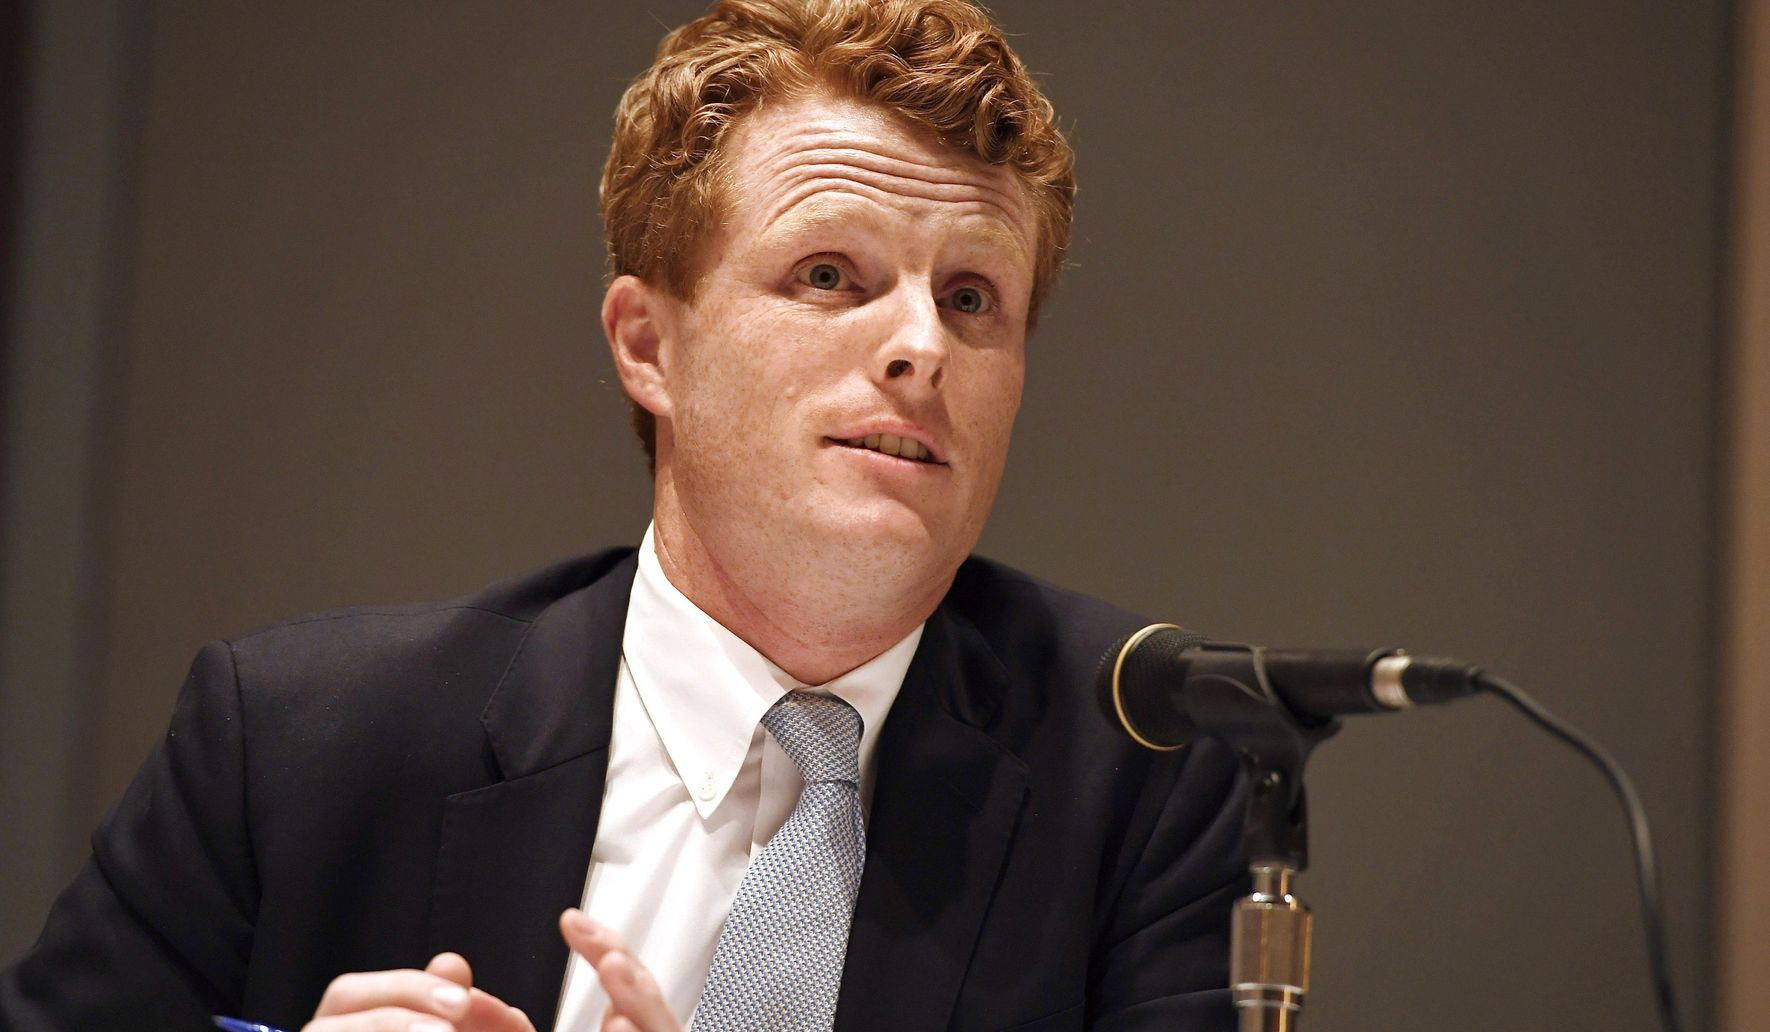 Joe Kennedy to launch Ed Markey primary challenge: Report